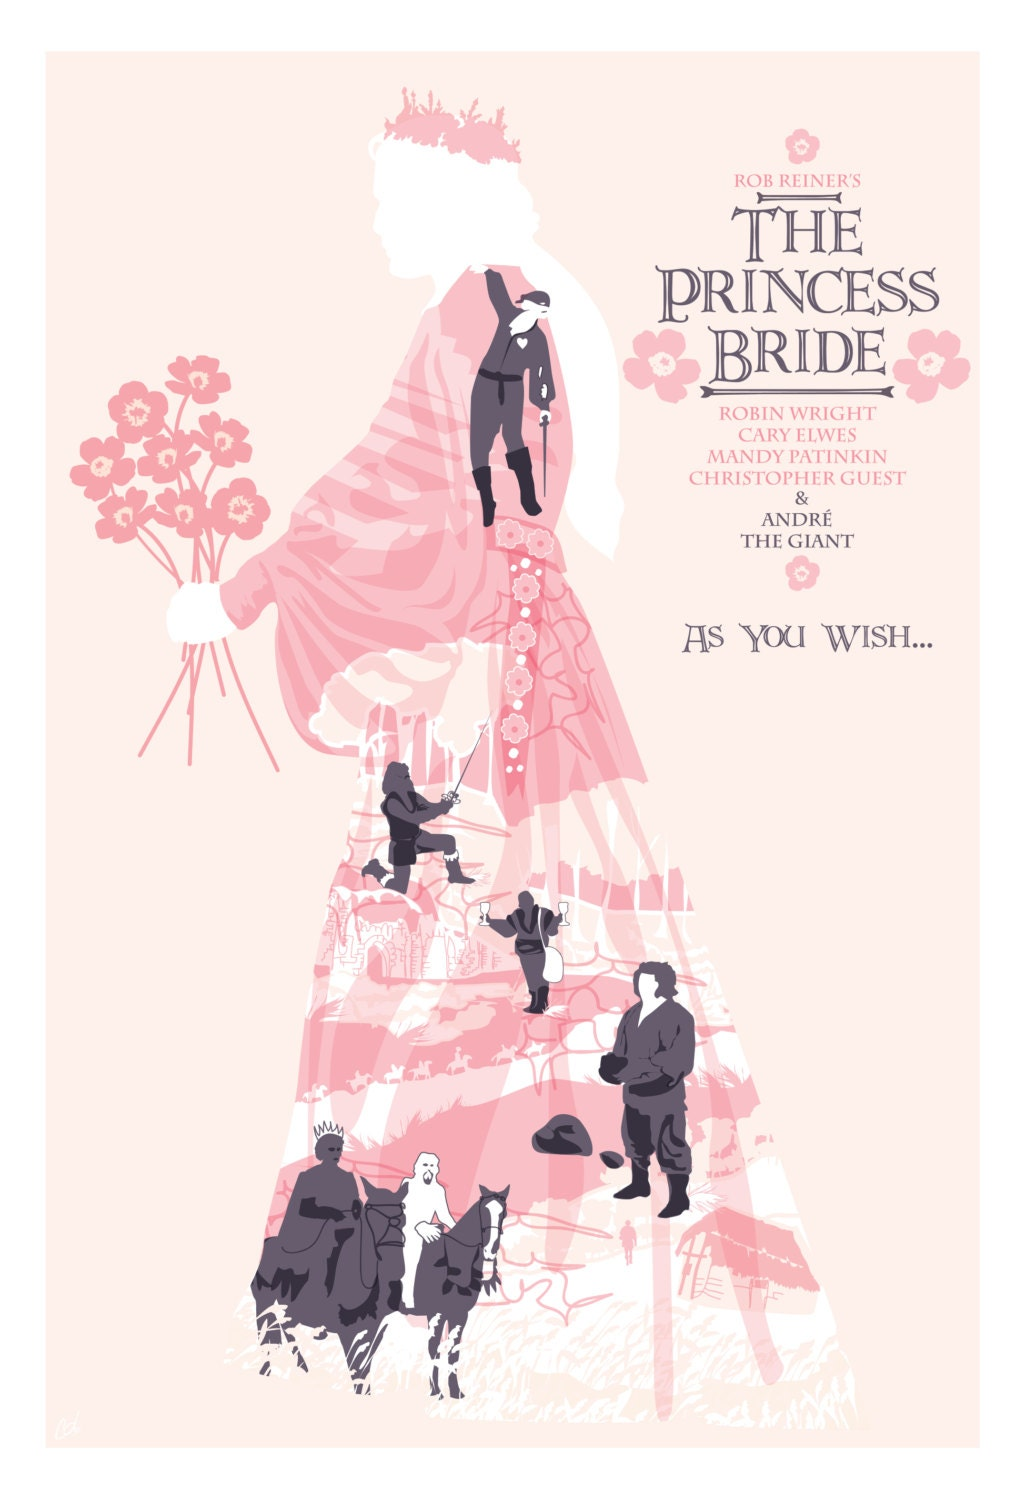 The Little Prince Inspired Quote 2nd Edition Art Print: The Princess Bride 1987 Inspired Movie Poster As You